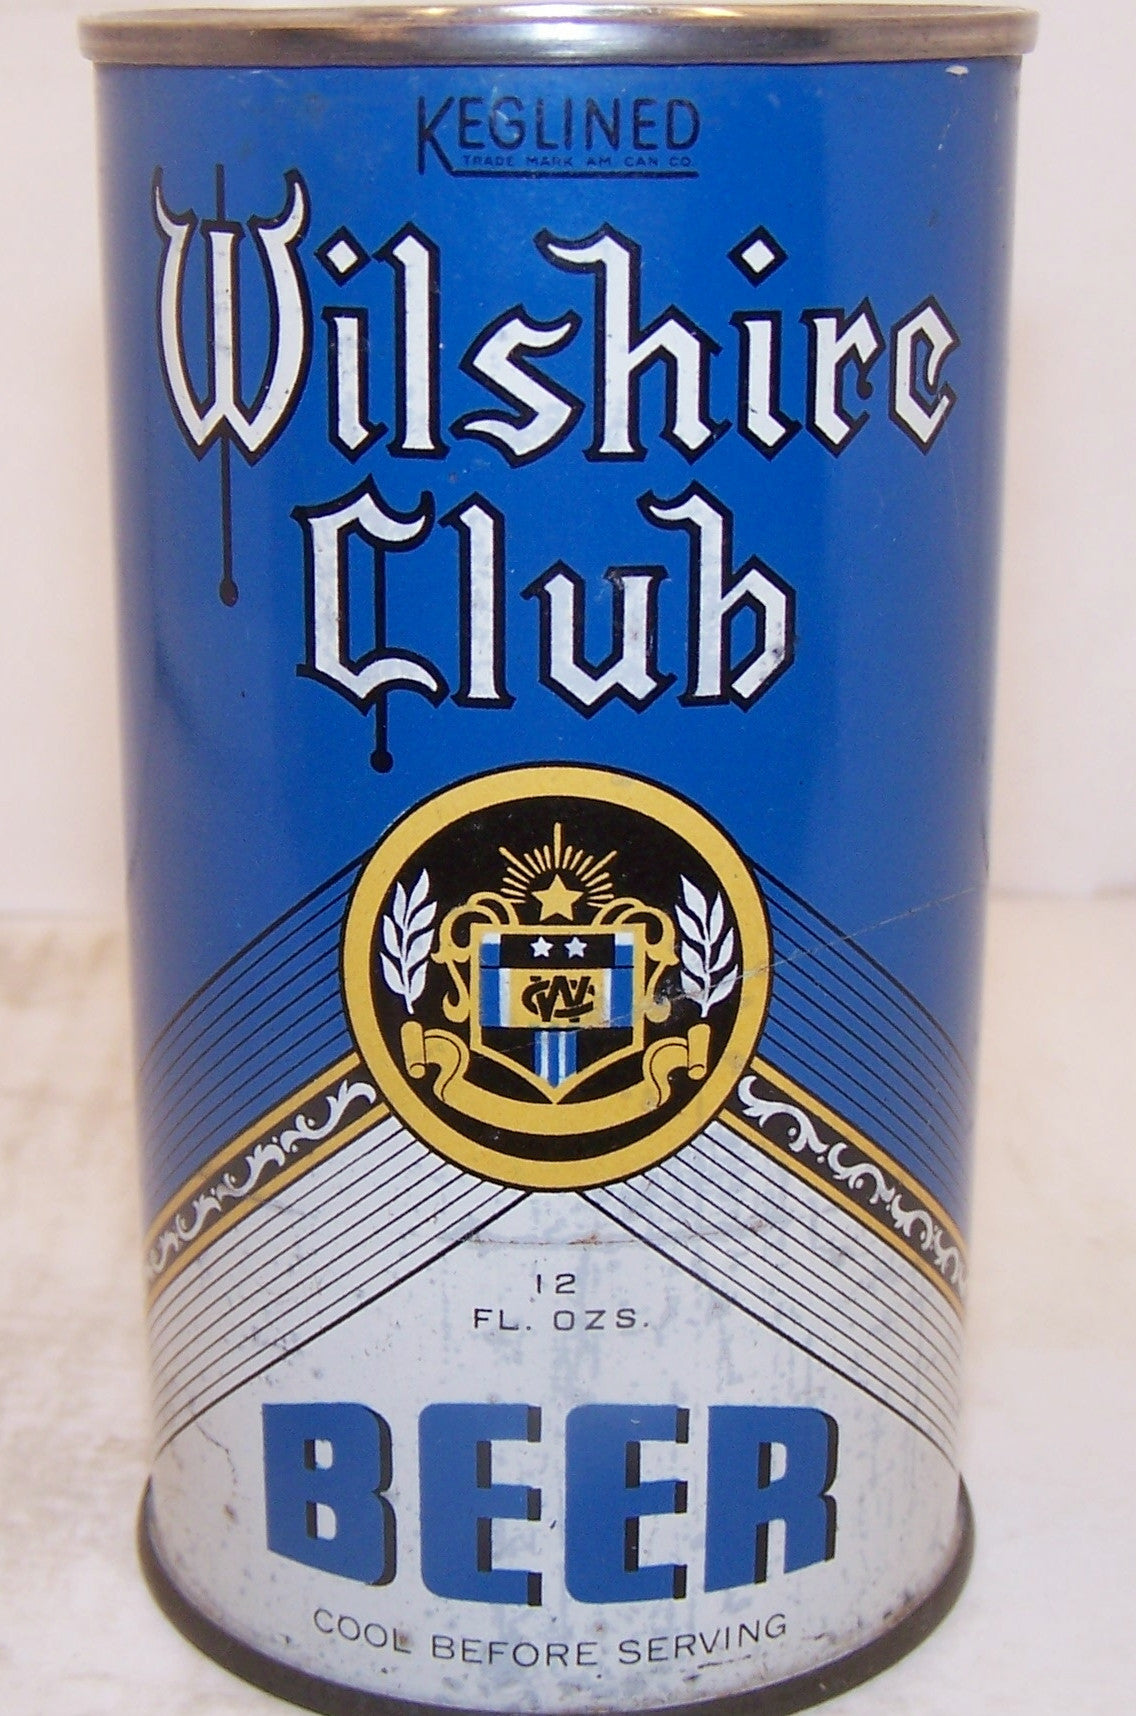 Wilshire Club Beer (Keglined) Lilek page # 882, Grade 1-/2+ Sold on 4/8/15